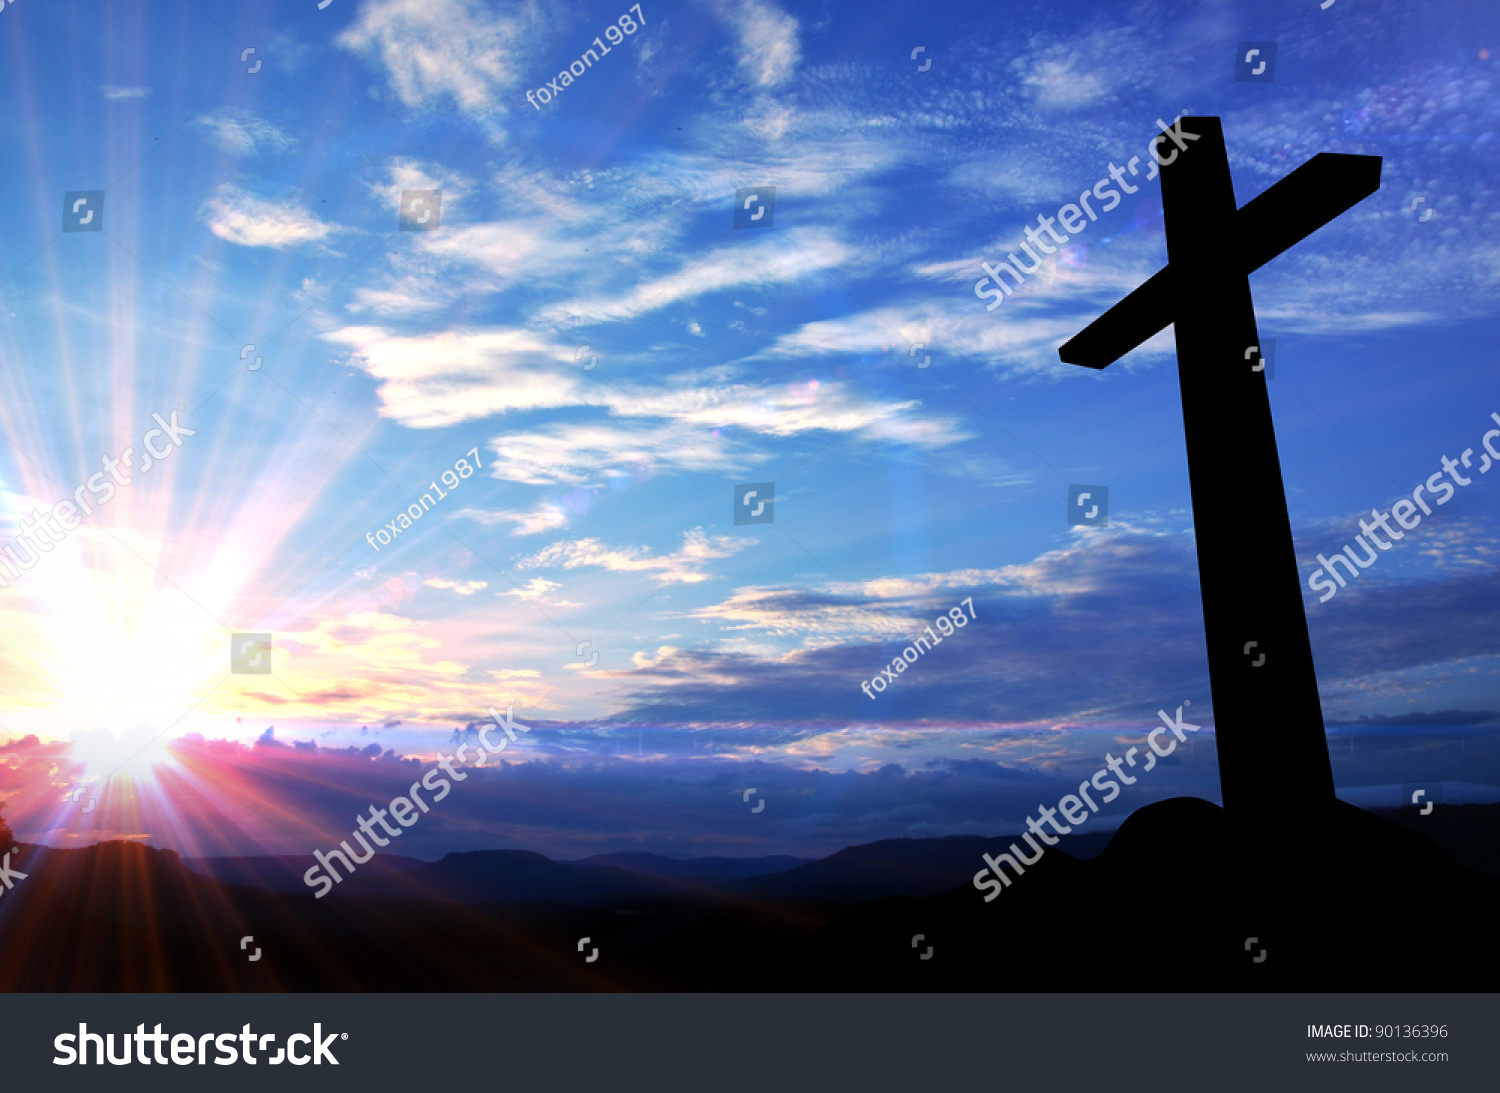 Silhouette of the holy cross on background of storm clouds stock - Cross Silhouette And The Holy Blue Sky